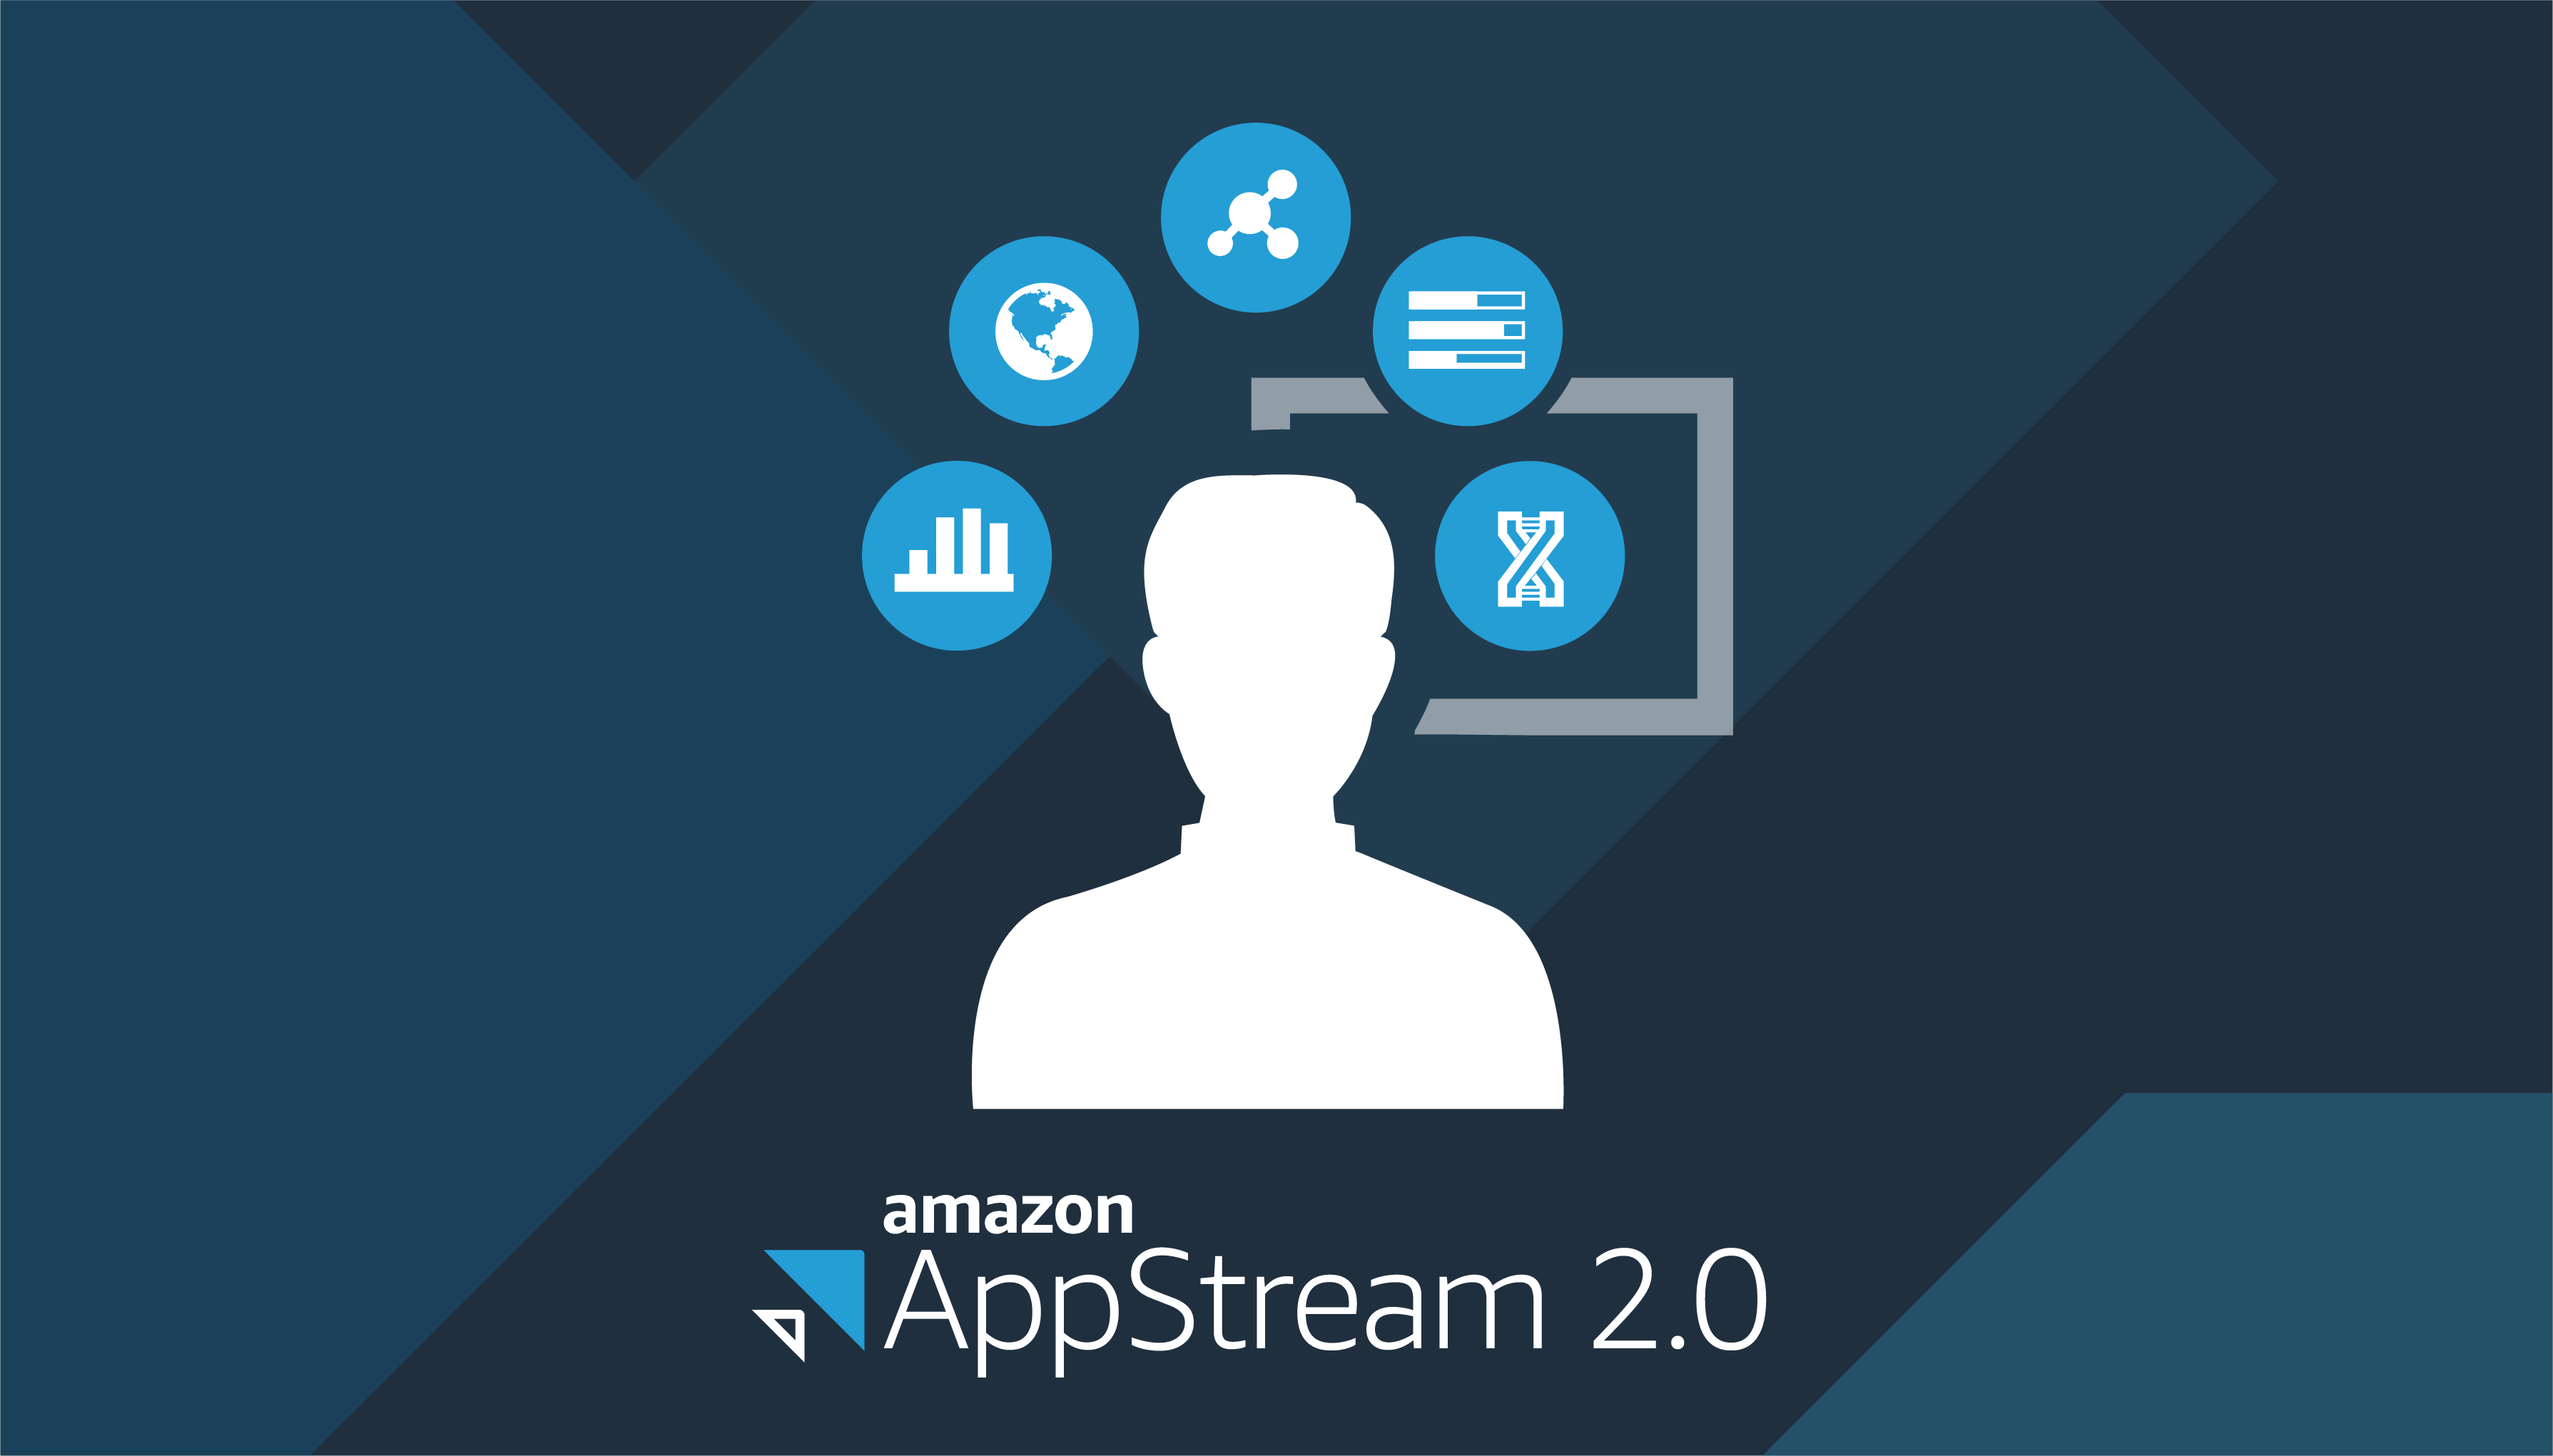 Try sample applications on Amazon AppStream 2.0